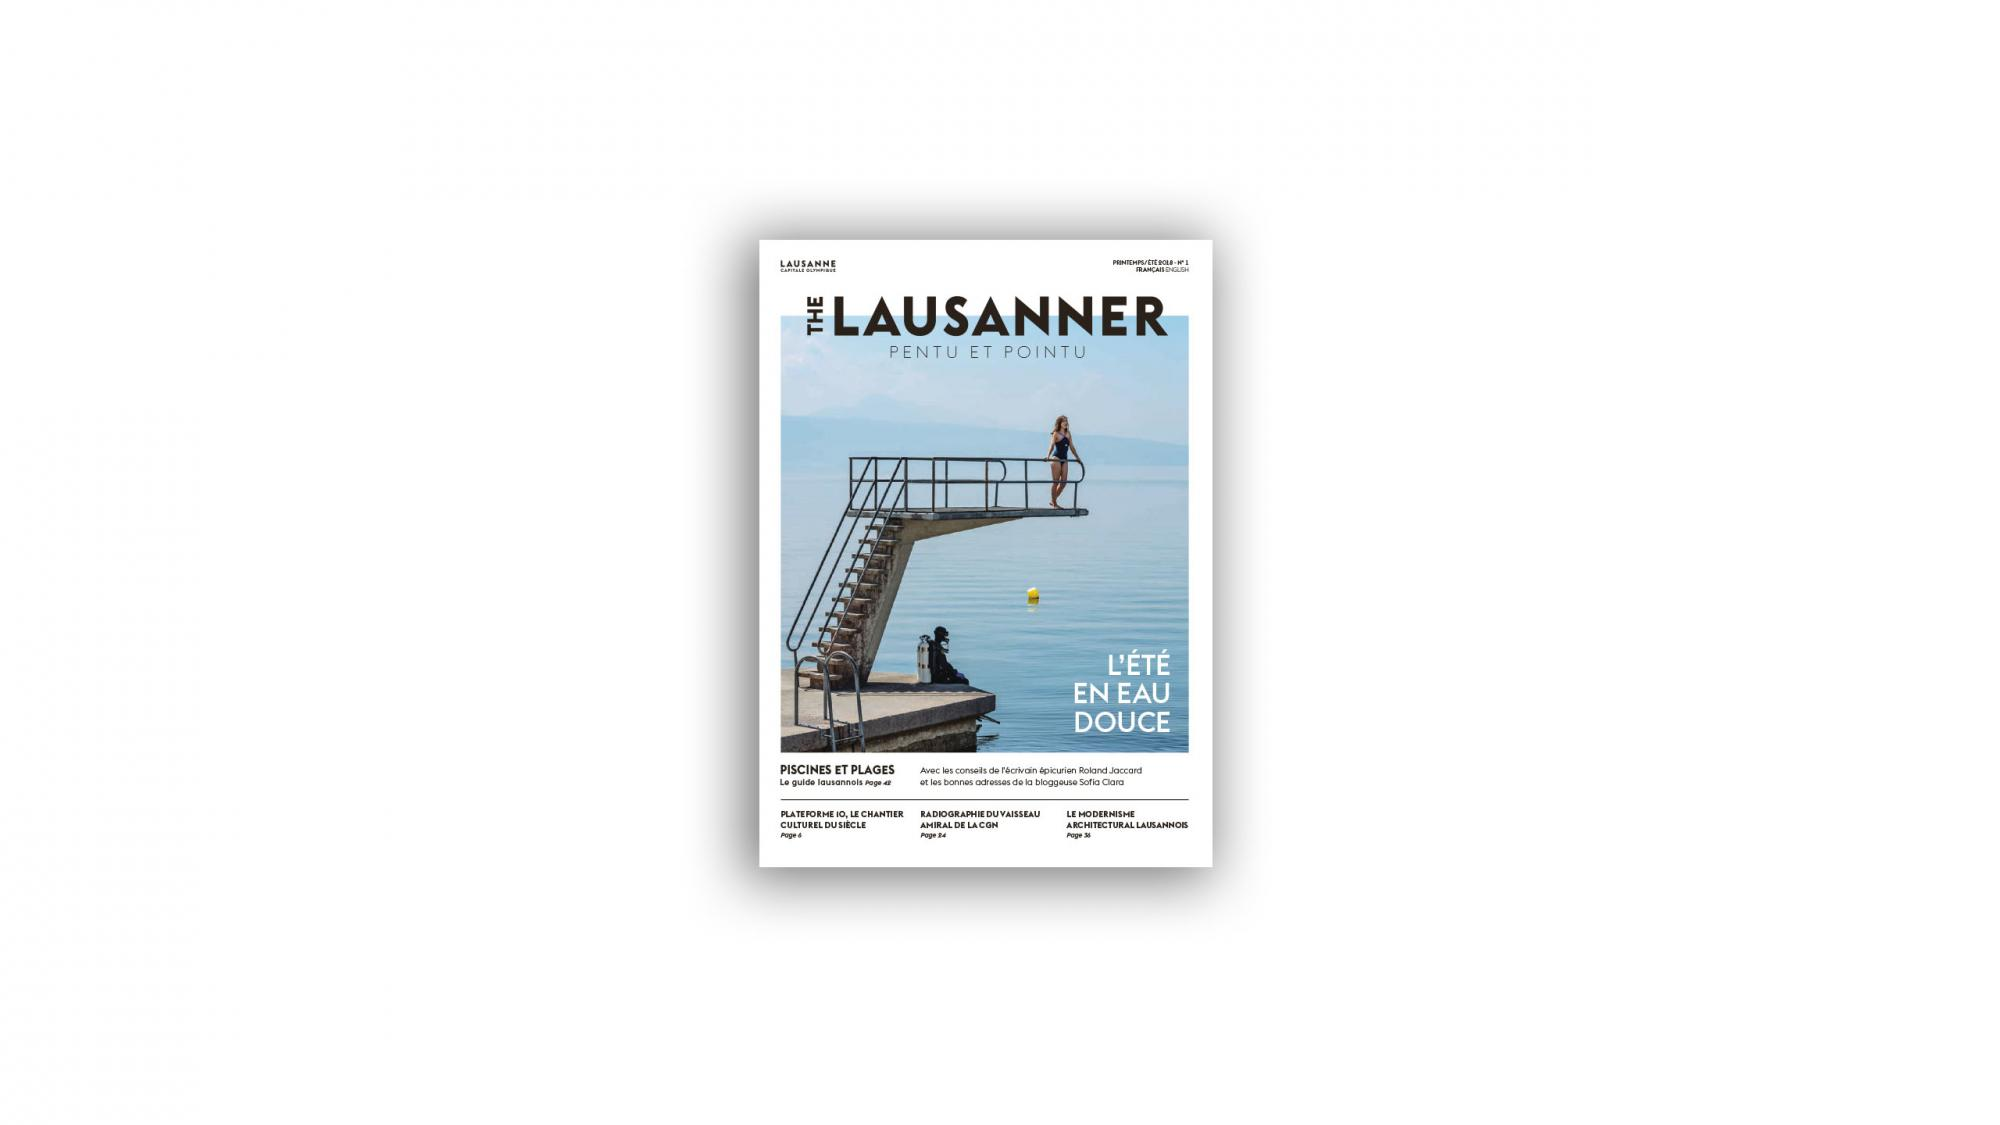 The Lausanner